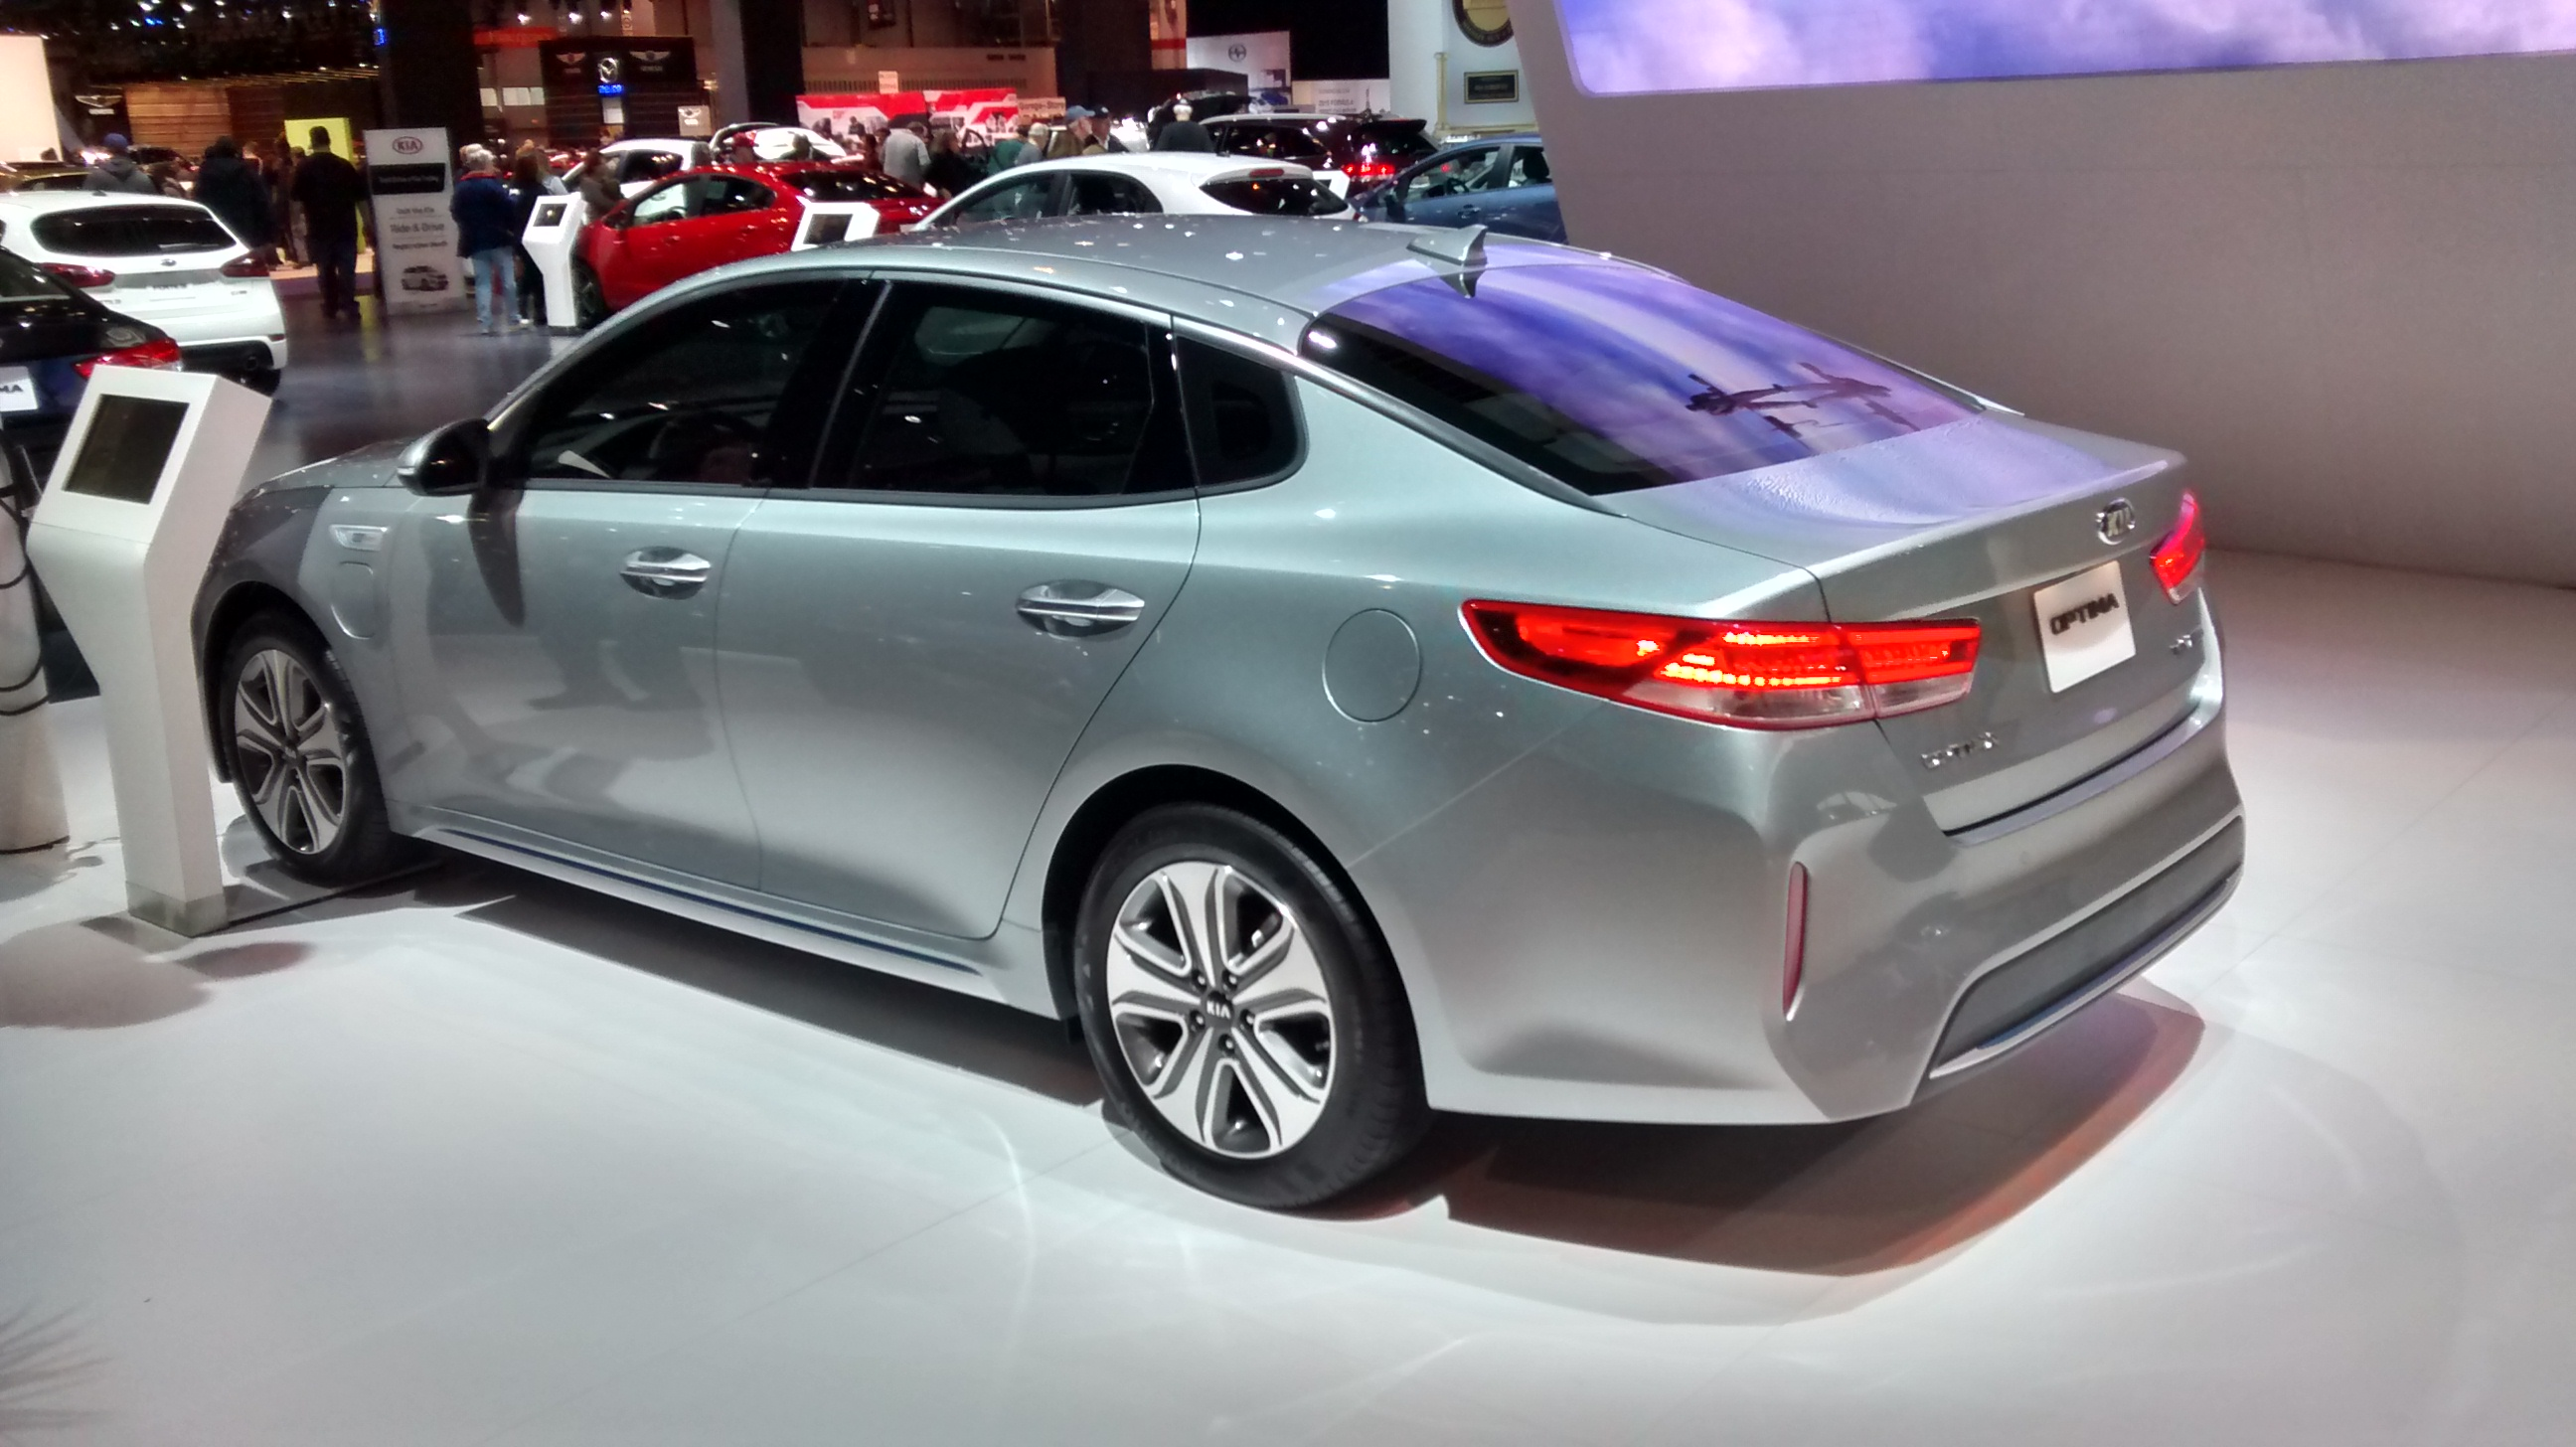 kia and photo drive driver s news optima hybrid in plug photos car info original reviews first